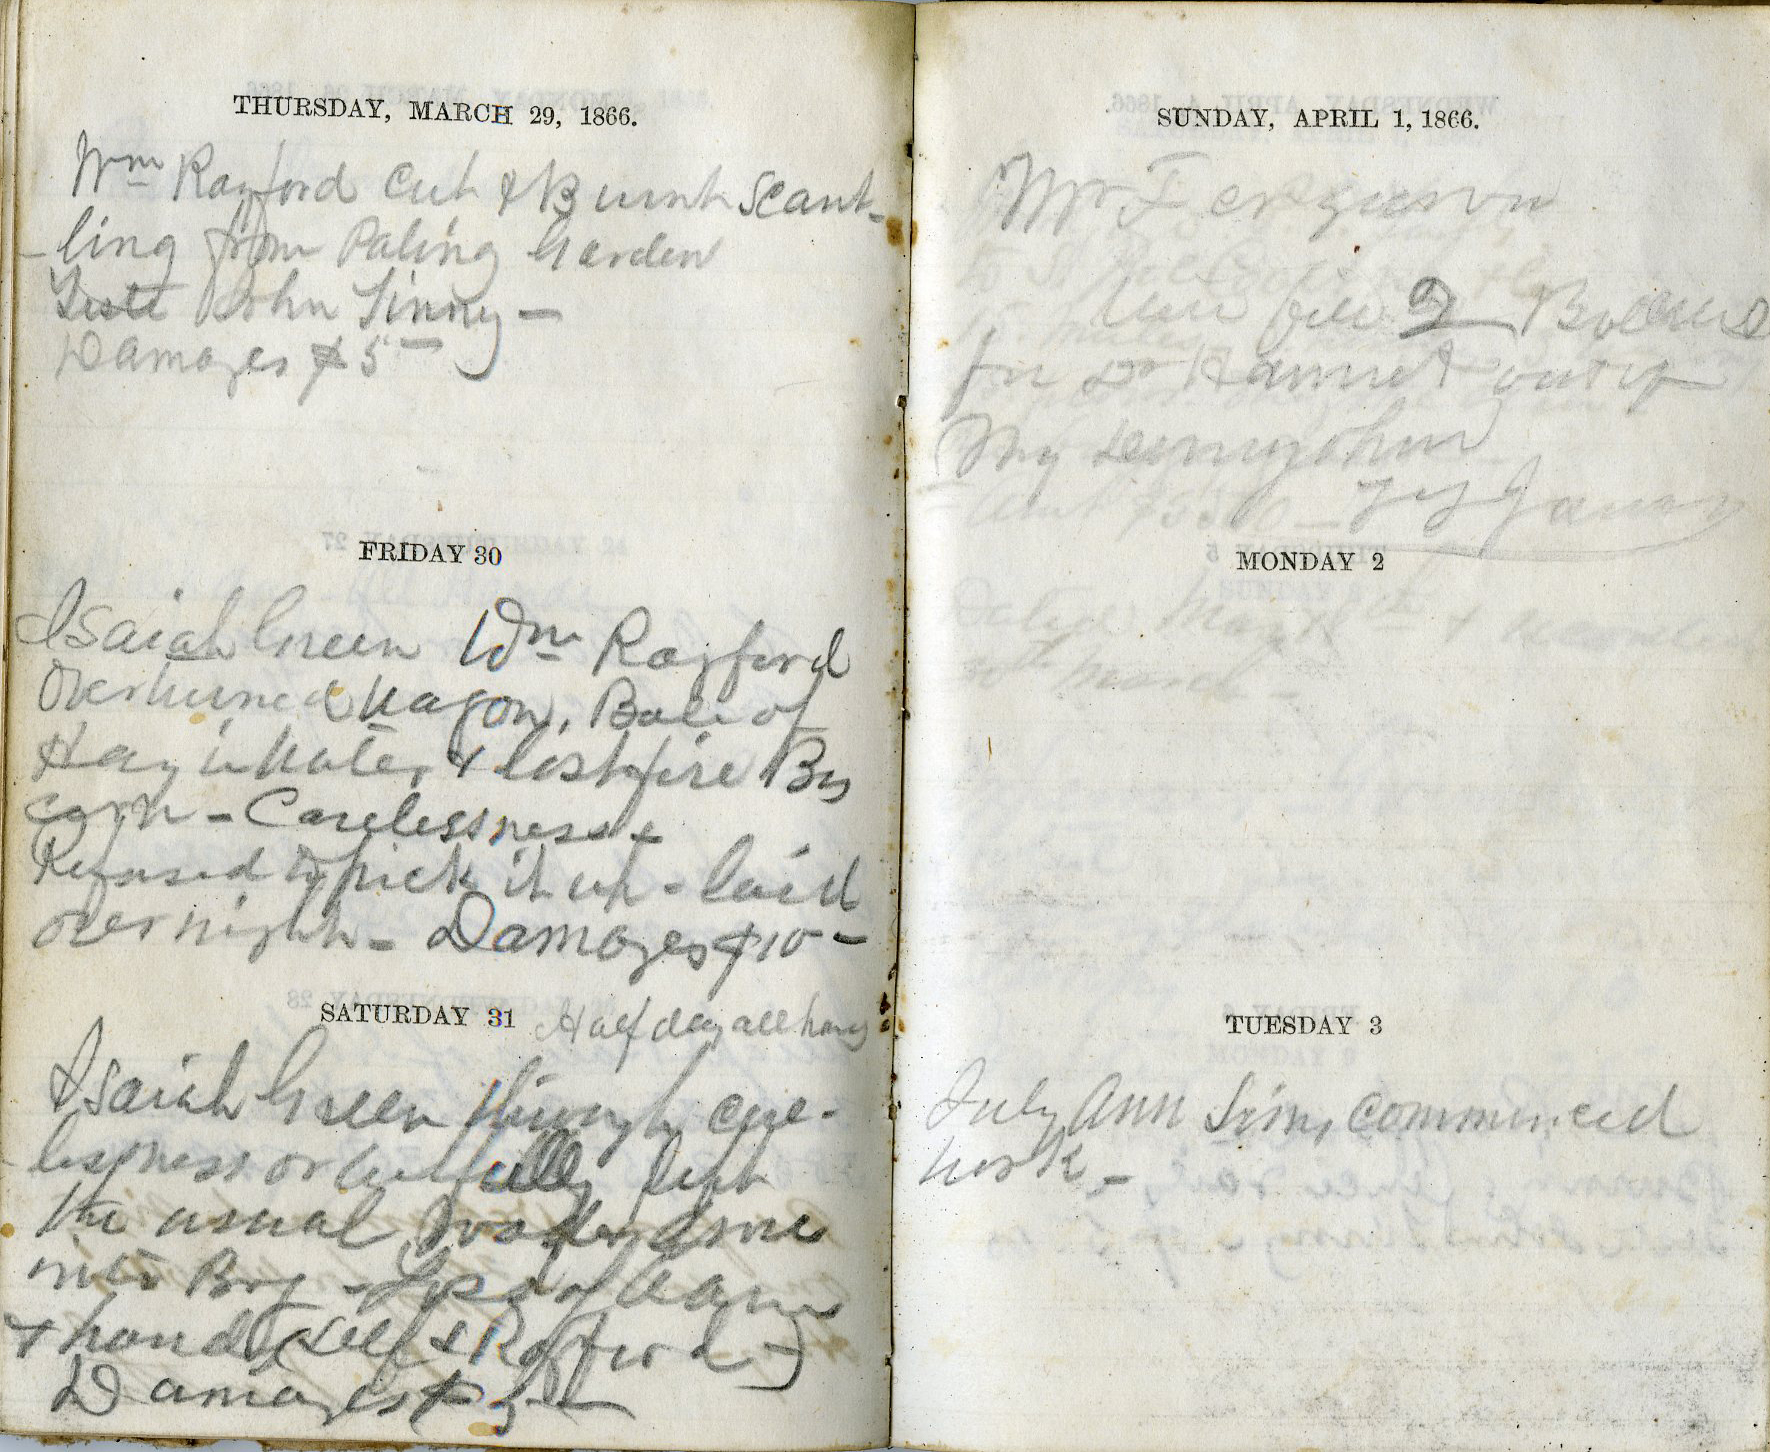 "Many of the journal entries made by James P. Hammet while managing operations of Lammermoor relate to fines he imposed on freedmen working at Lammermoor. The entry for March 30, 1866 reads: ""Isaiah Green Wm Rayford overturned a wagon, Bale of Hay in water...  By [cause?] - Carelessness - Refused to pick it up - laid over night. Damages $10-."" Elsewhere Hammet says of the workers, ""A more triffling [sic] set never were congregated together."""